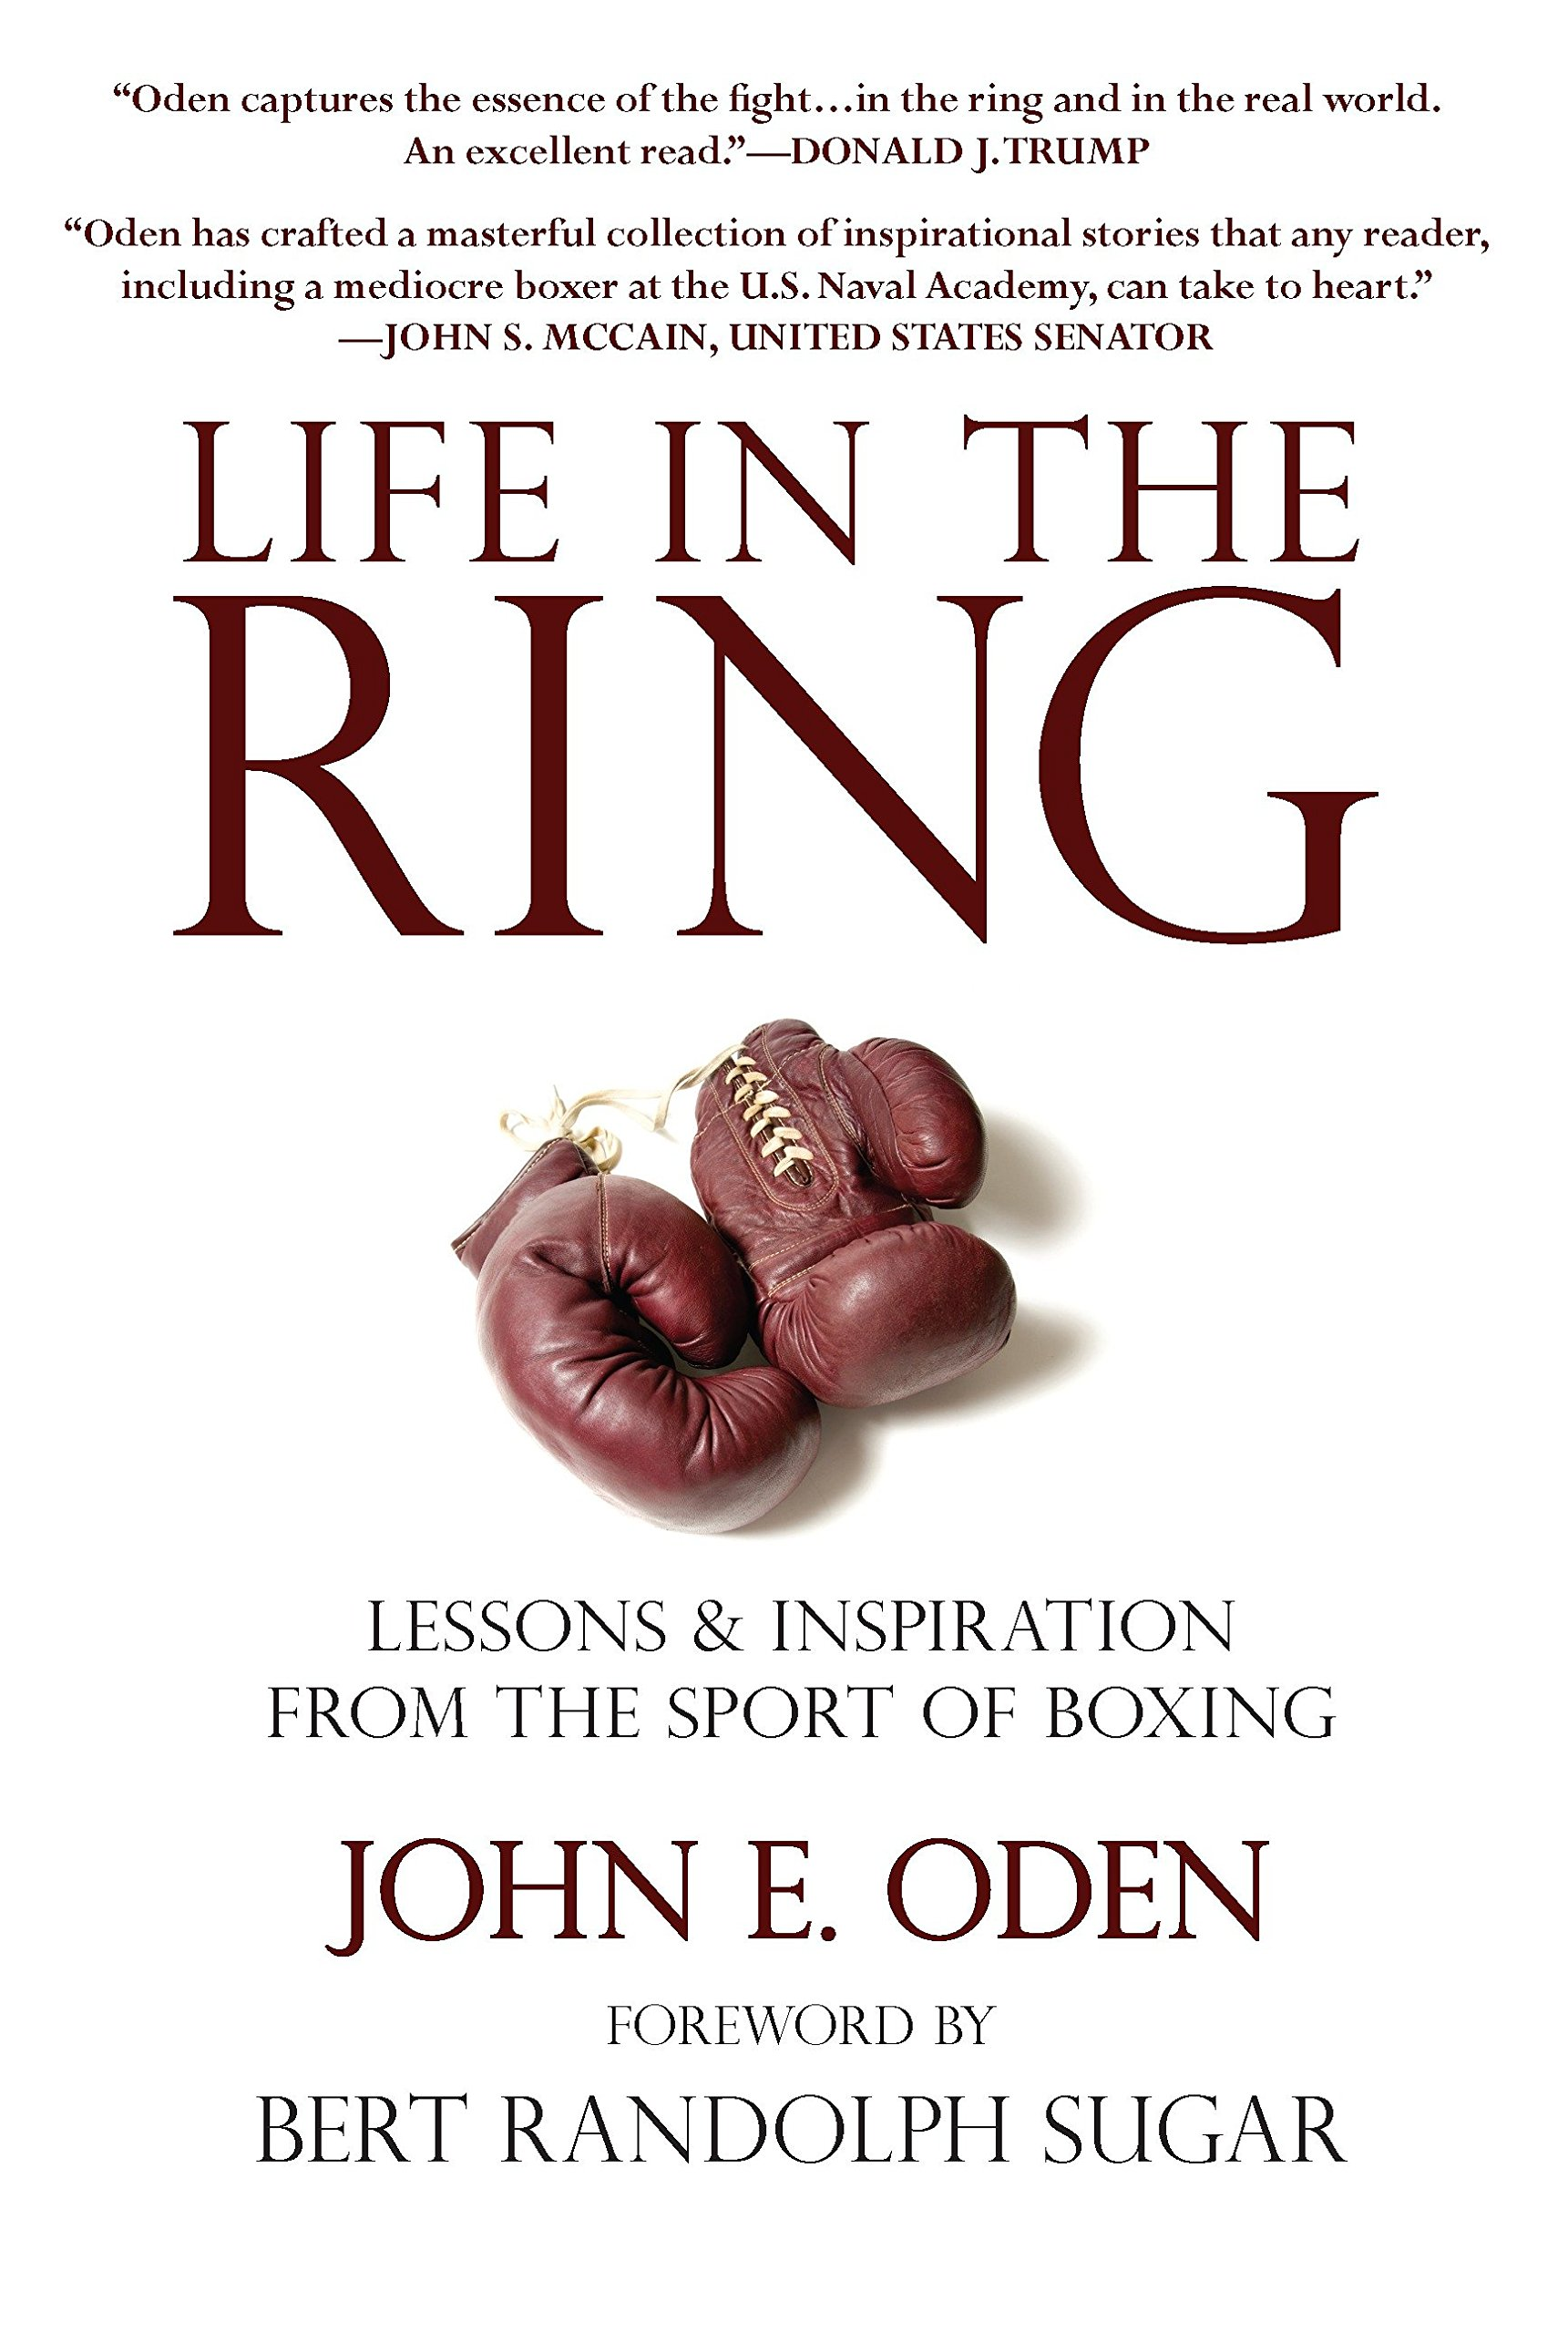 Life in the Ring: Lessons and Inspiration from the Sport of Boxing Including Muhammad Ali, Oscar de la Hoya, Jake LaMotta, George Foreman, Floyd Patterson, and Rocky Marciano pdf